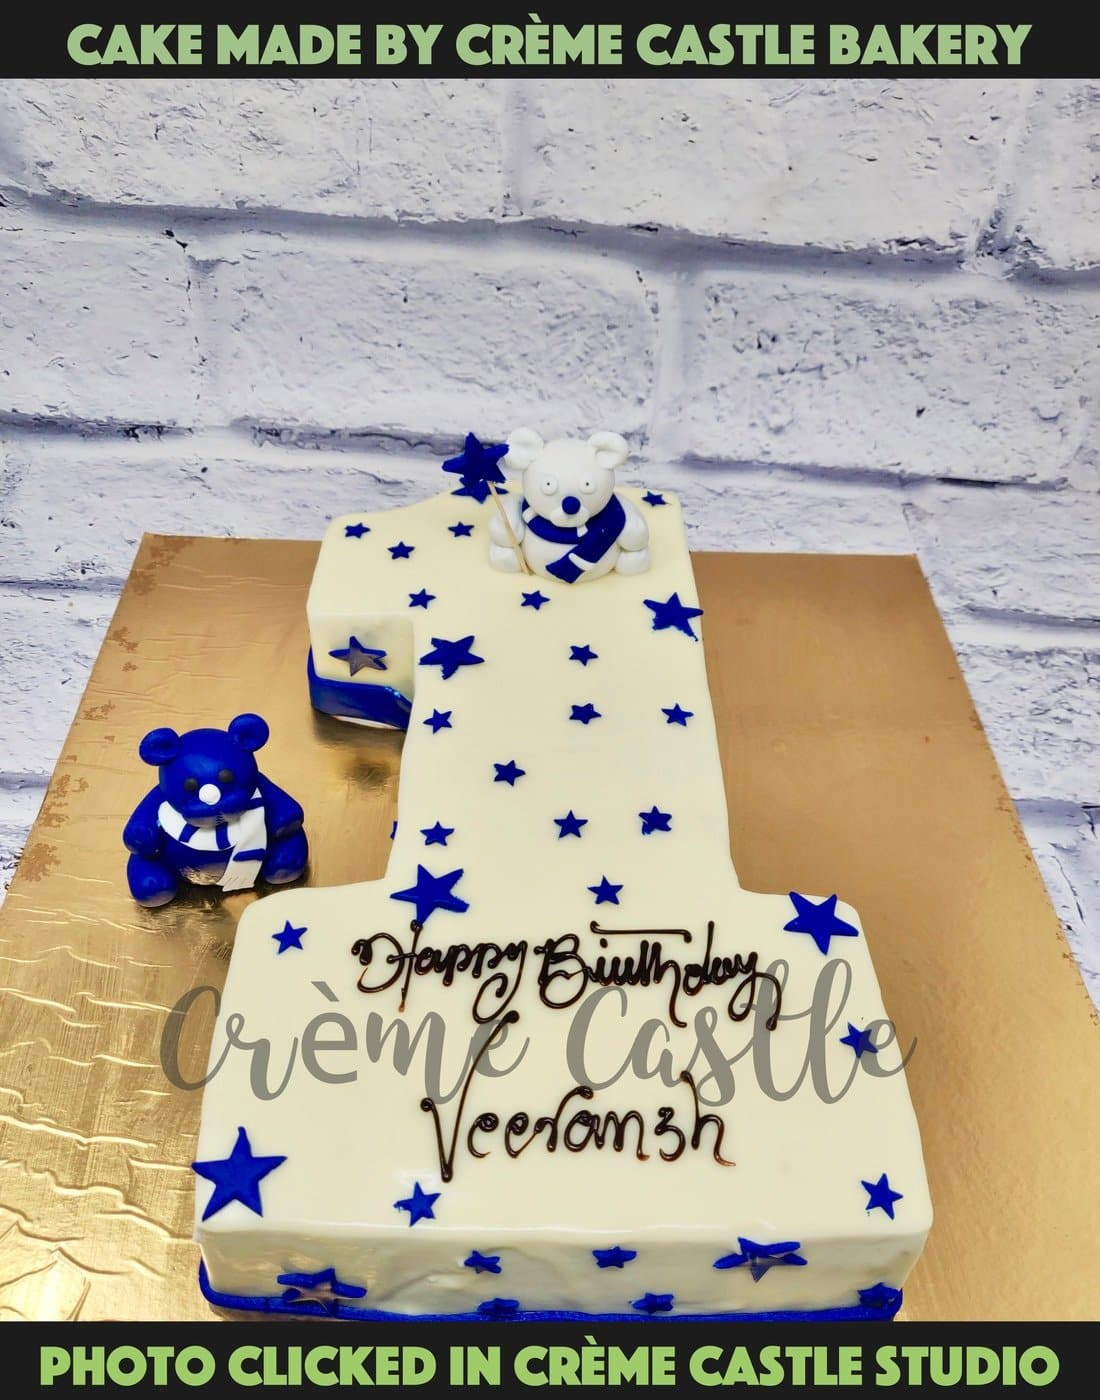 A cake for first birthday in the form of Number 1 in white theme with blue stars sprinkled all over the cake.